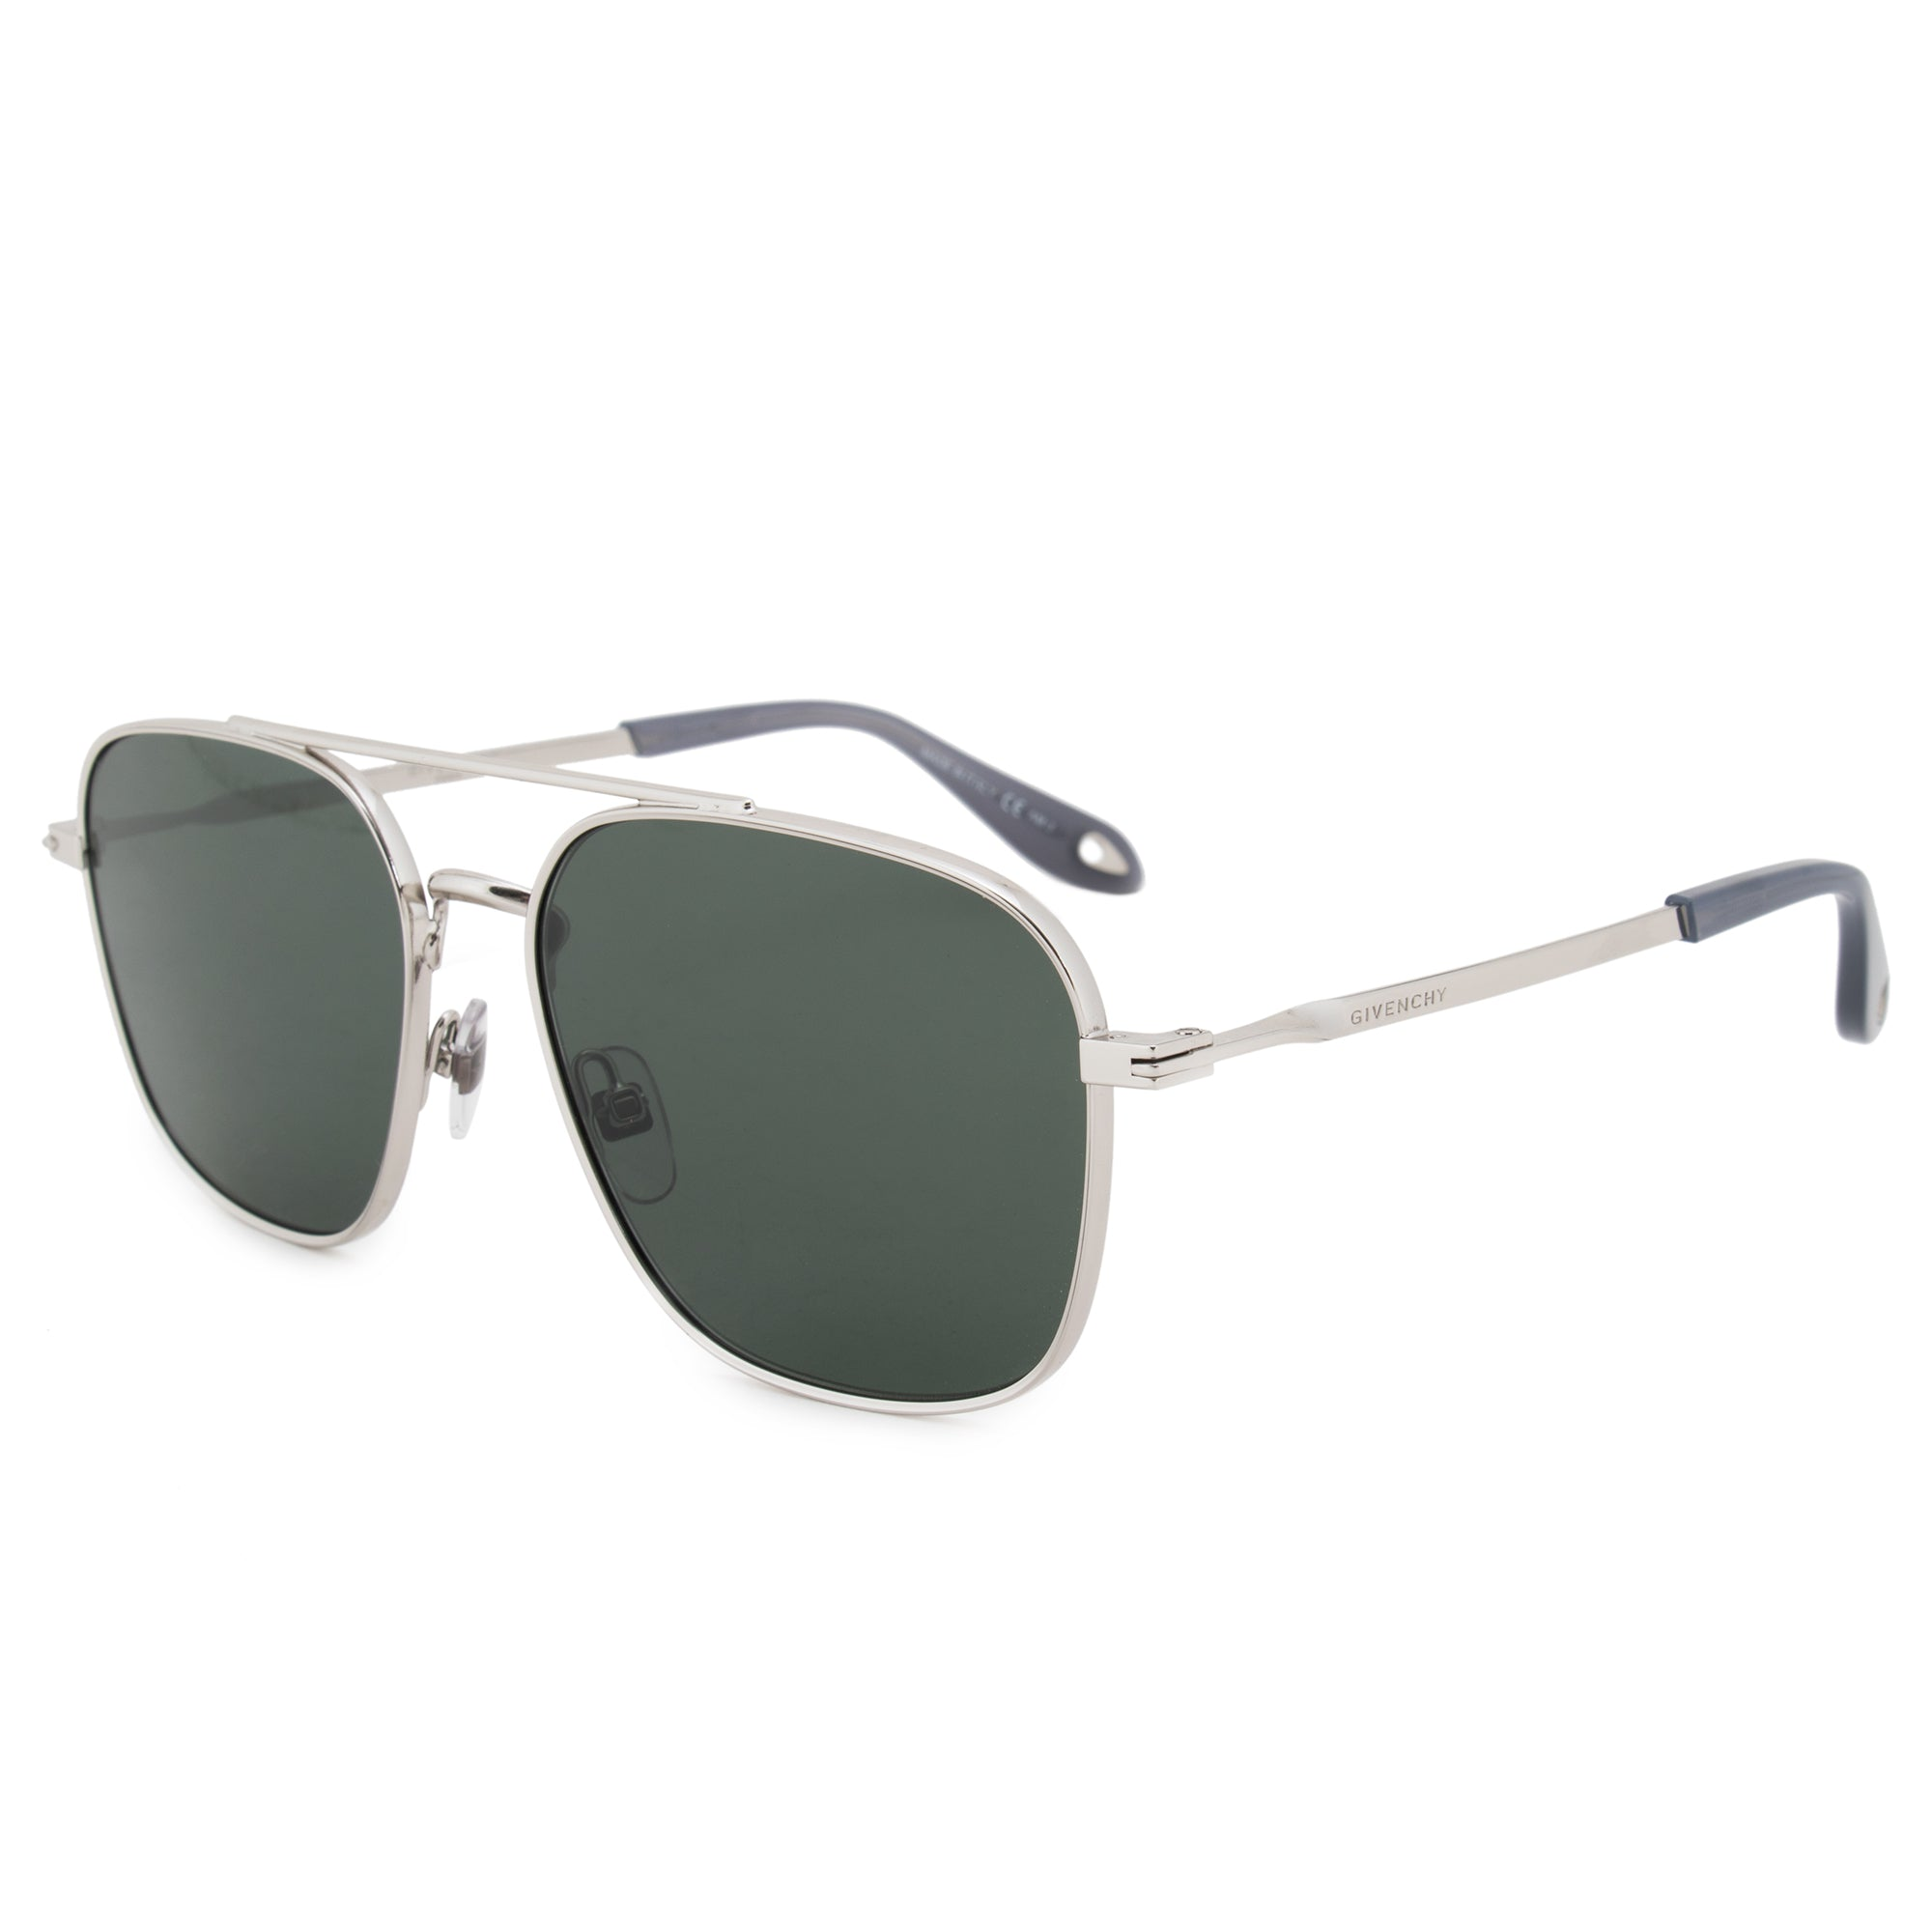 Givenchy Aviator Sunglasses GV7033/S 010 85 58